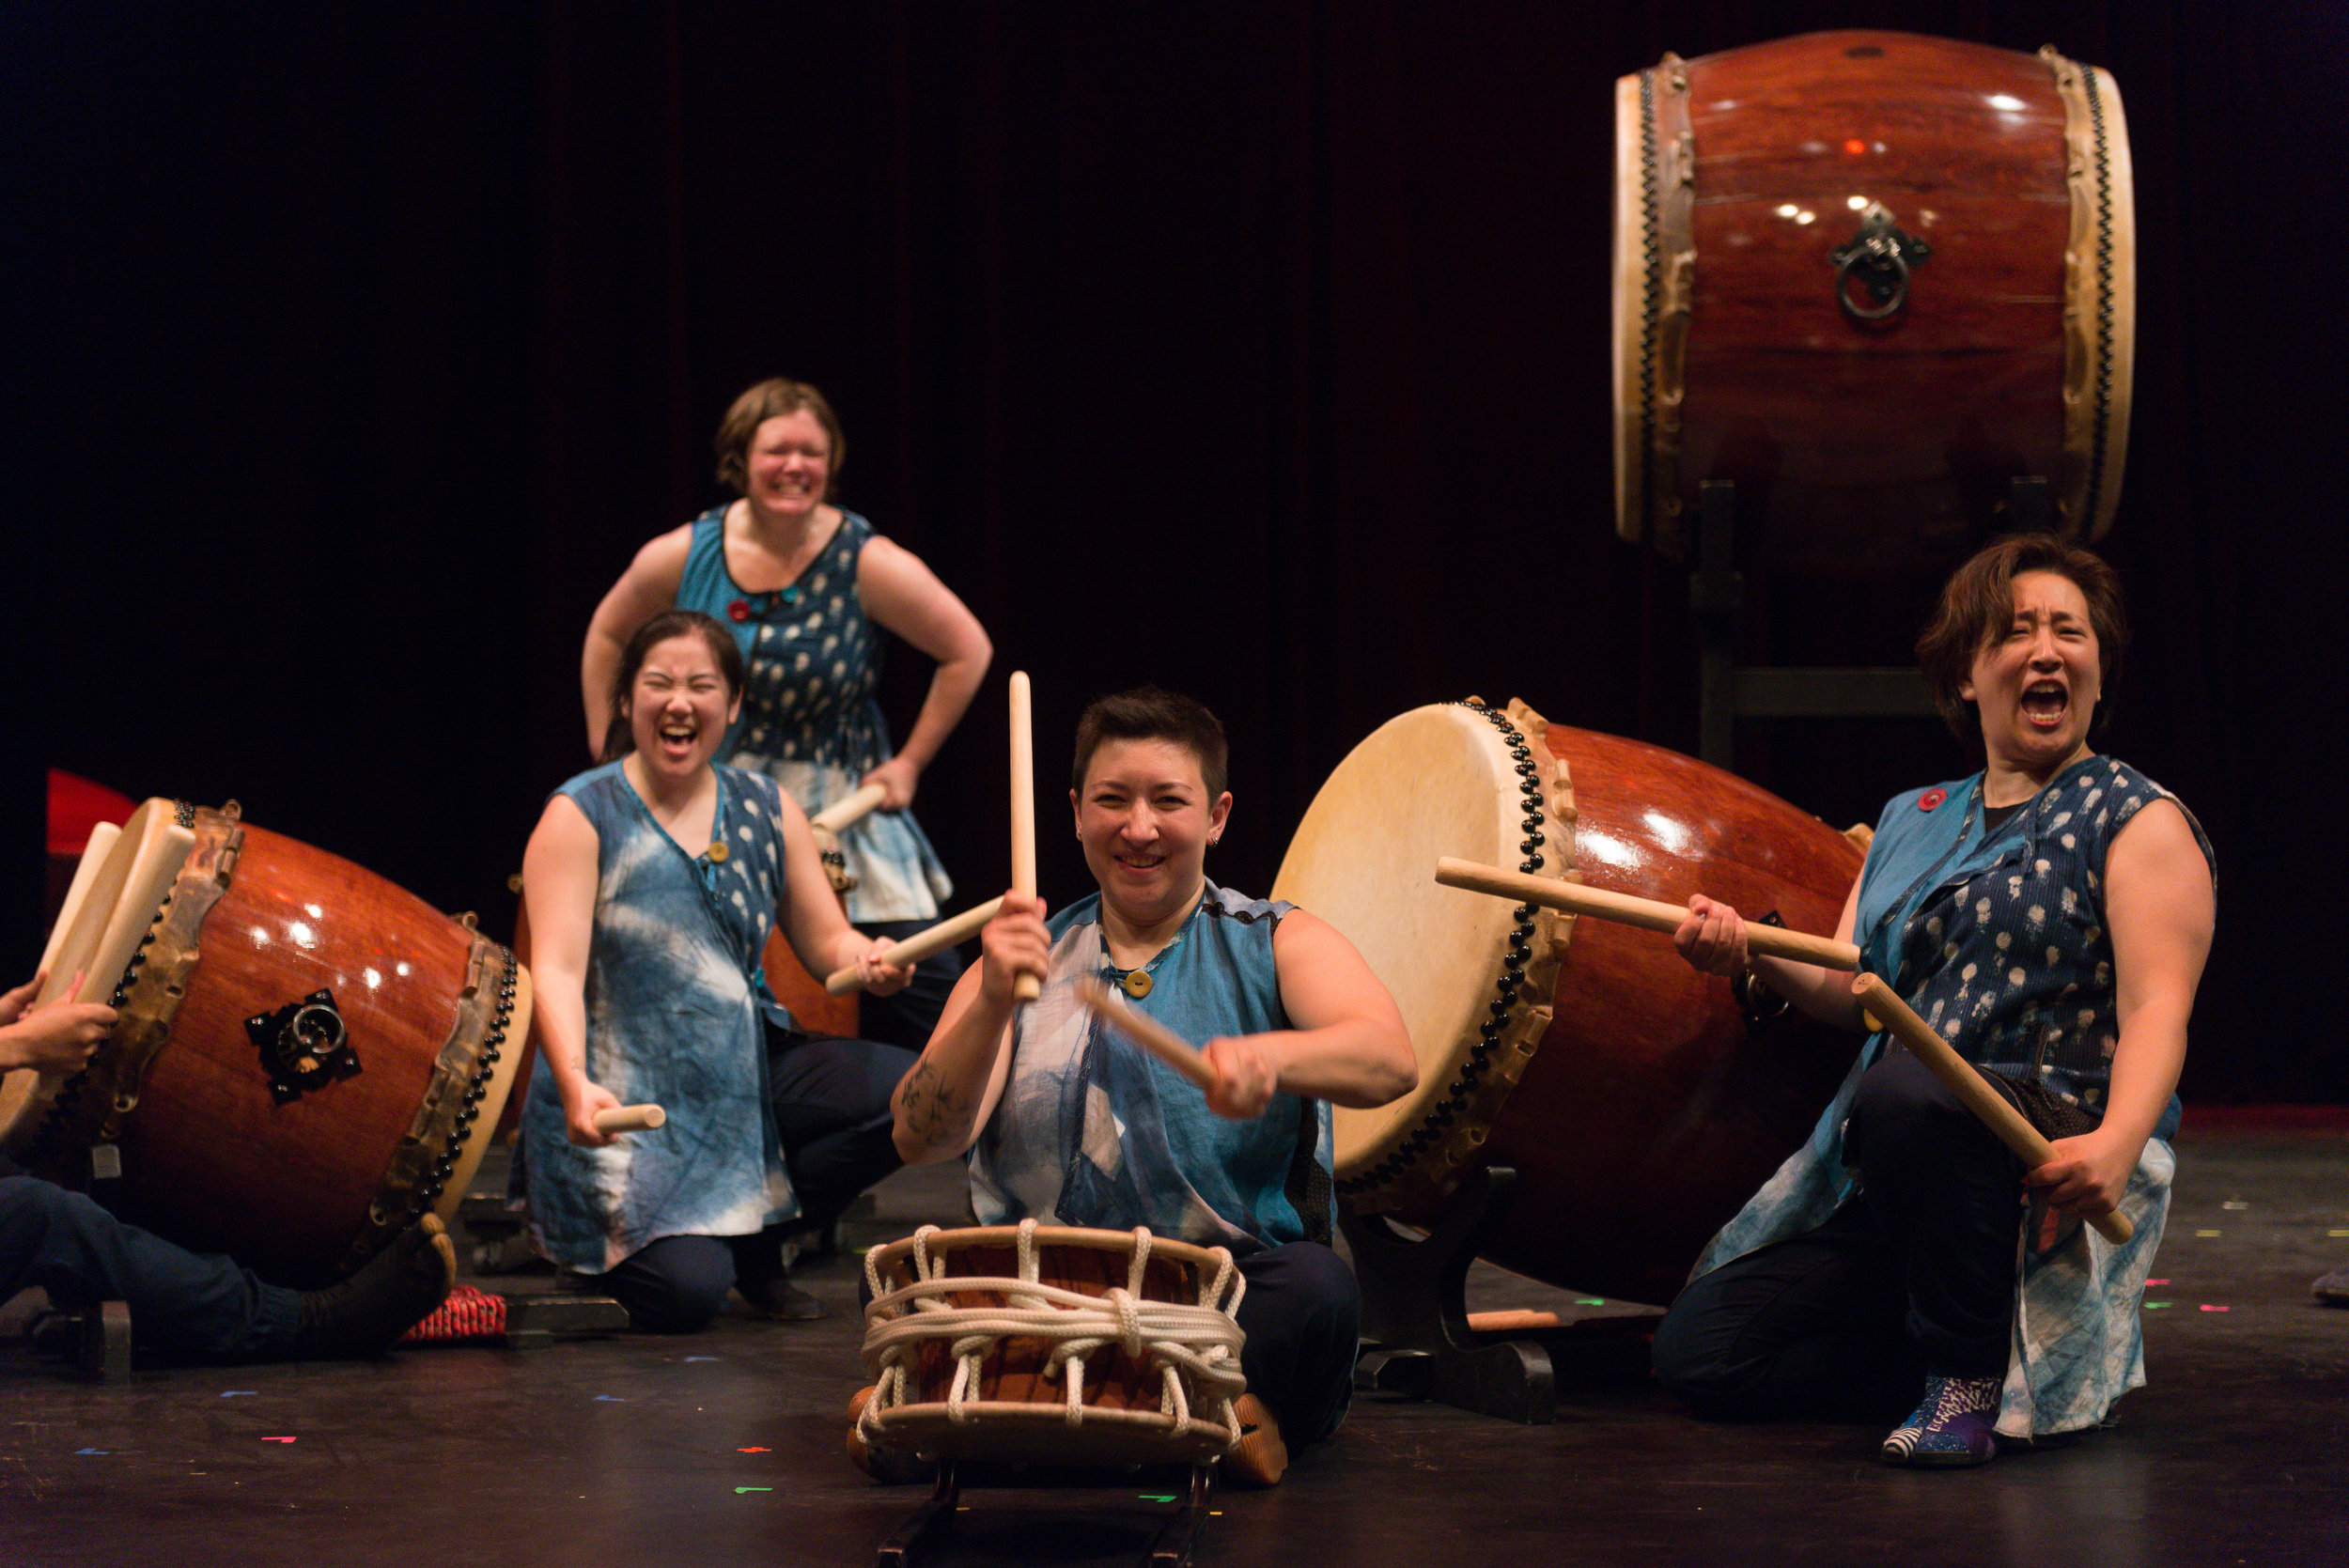 SUPPORT TAIKO -